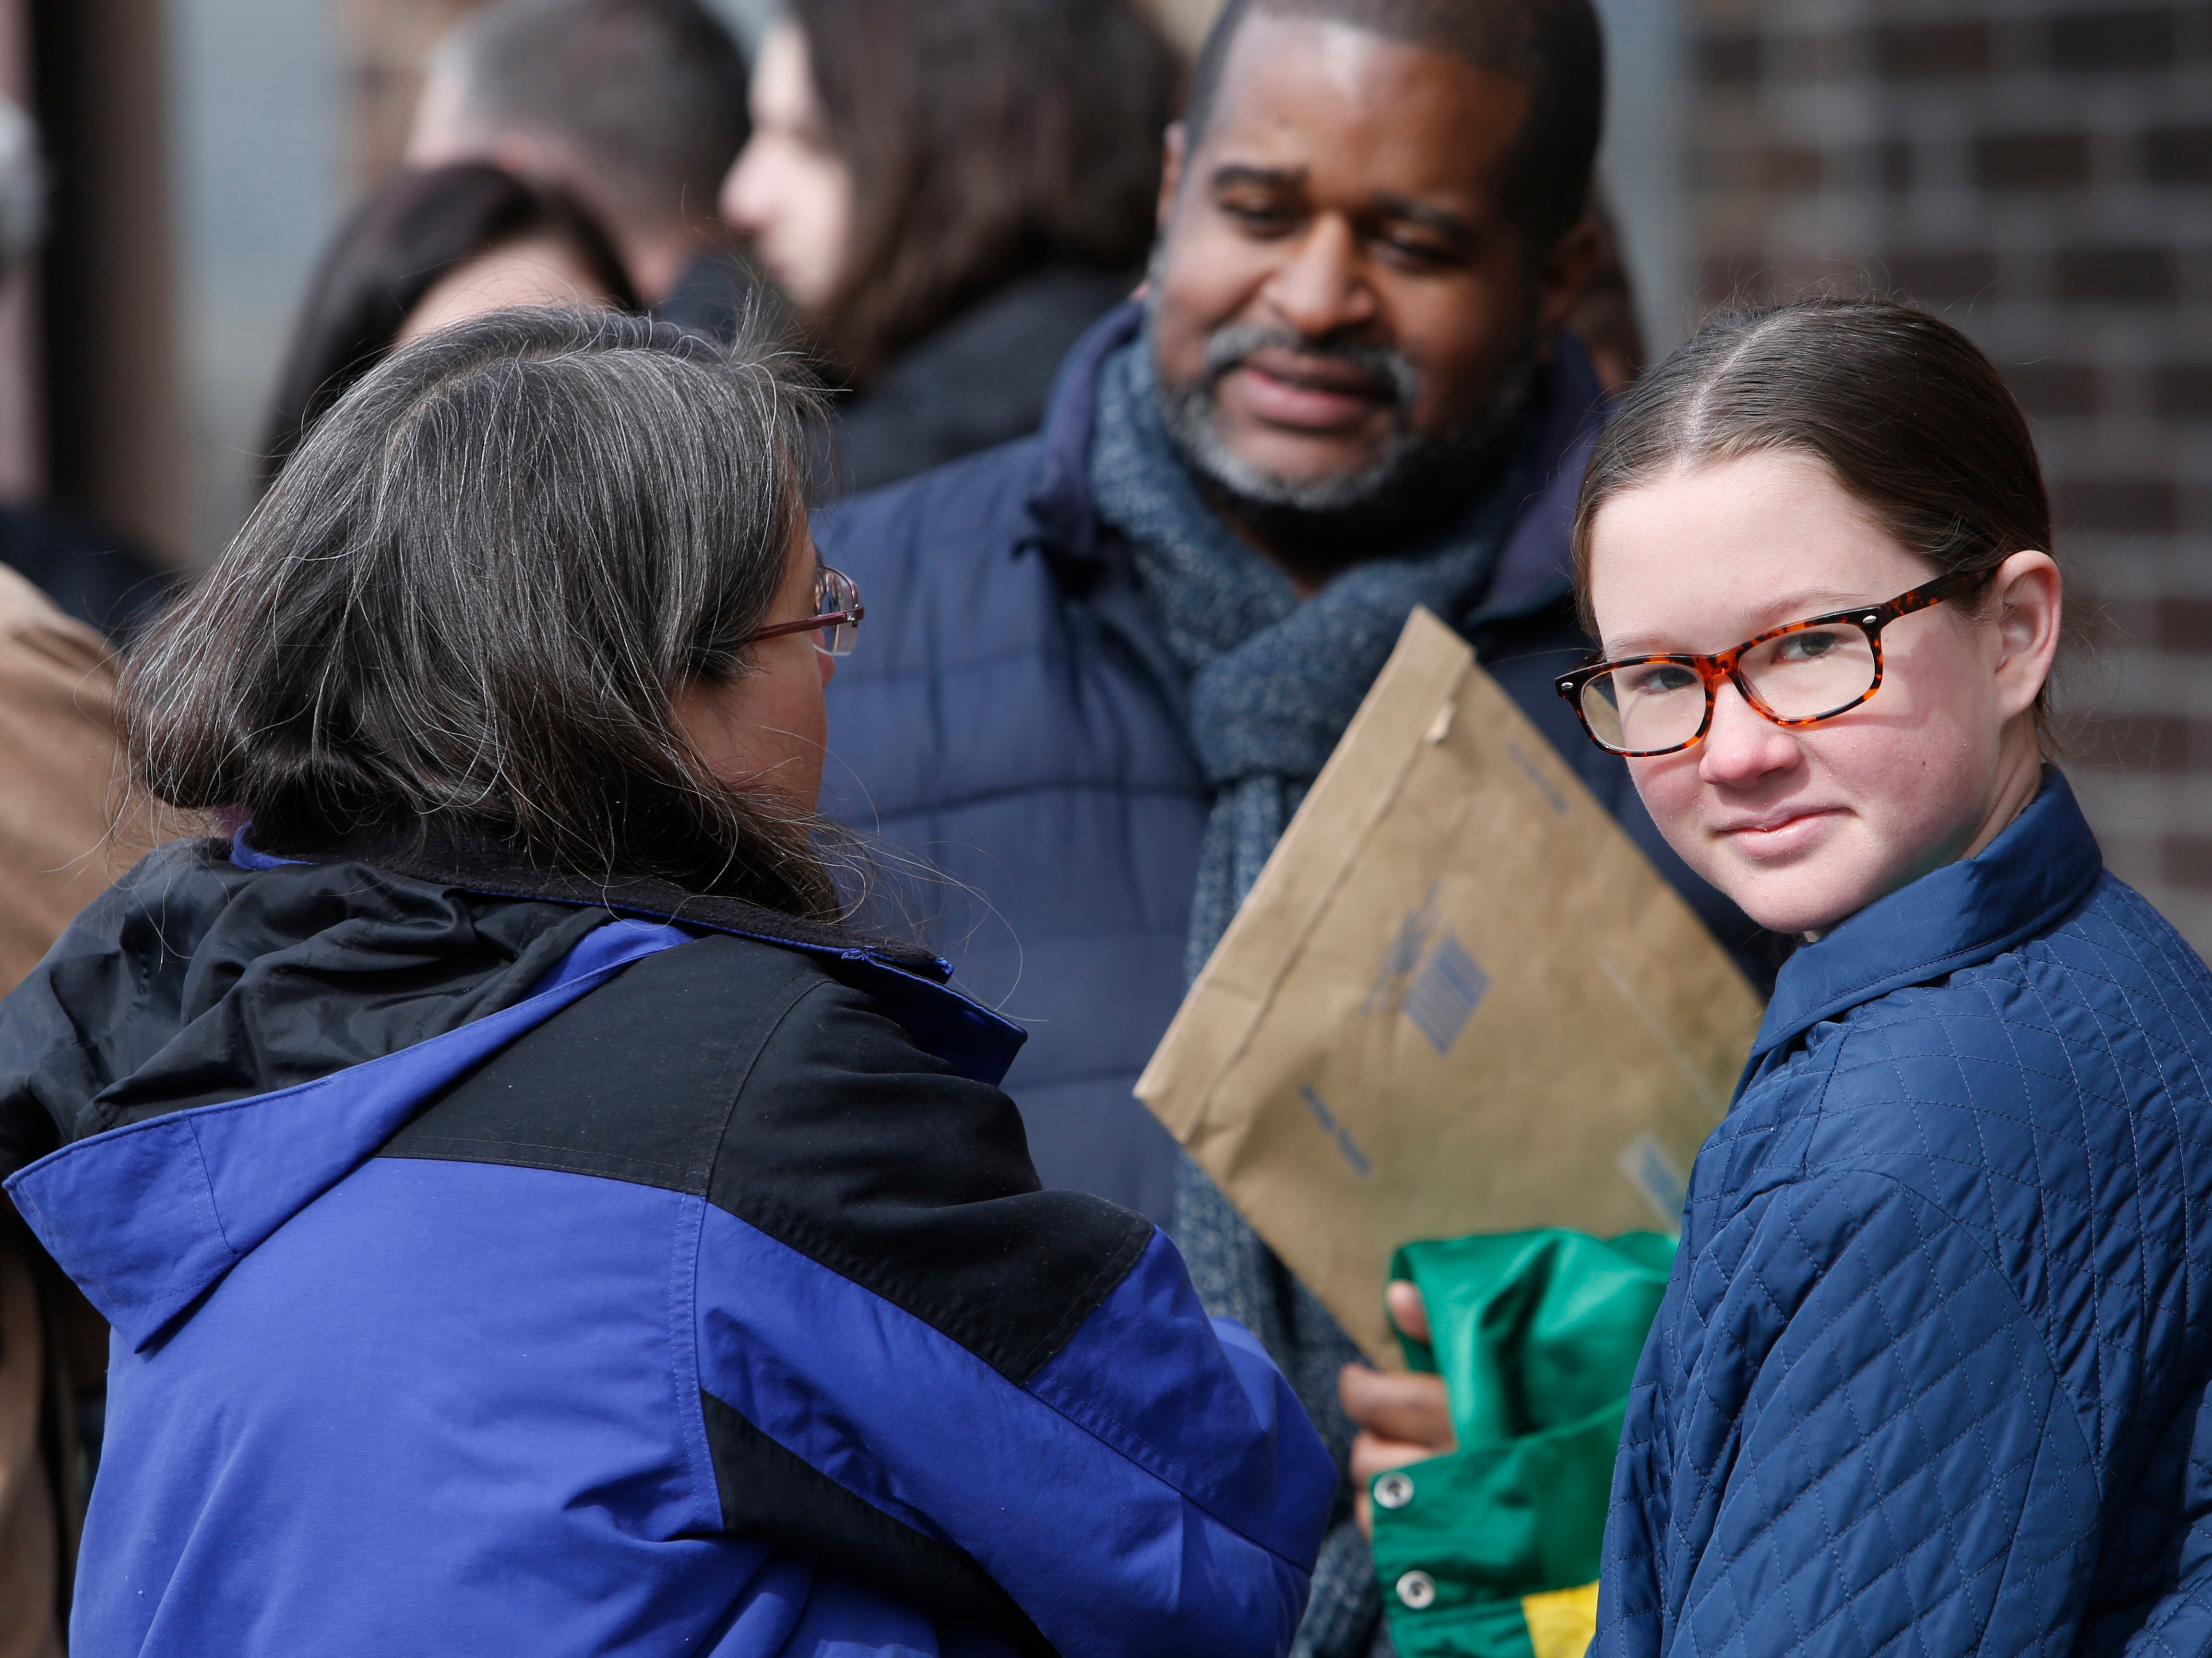 """Evelyn House of the Town of Poughkeepsie on line for Saturday's open casting call for an HBO series staring Mark Ruffalo, called """"I Know This Much is True"""" at the Majed J. Nesheiwat Convention Center in the City of Poughkeepsie on Feb 23, 2019."""